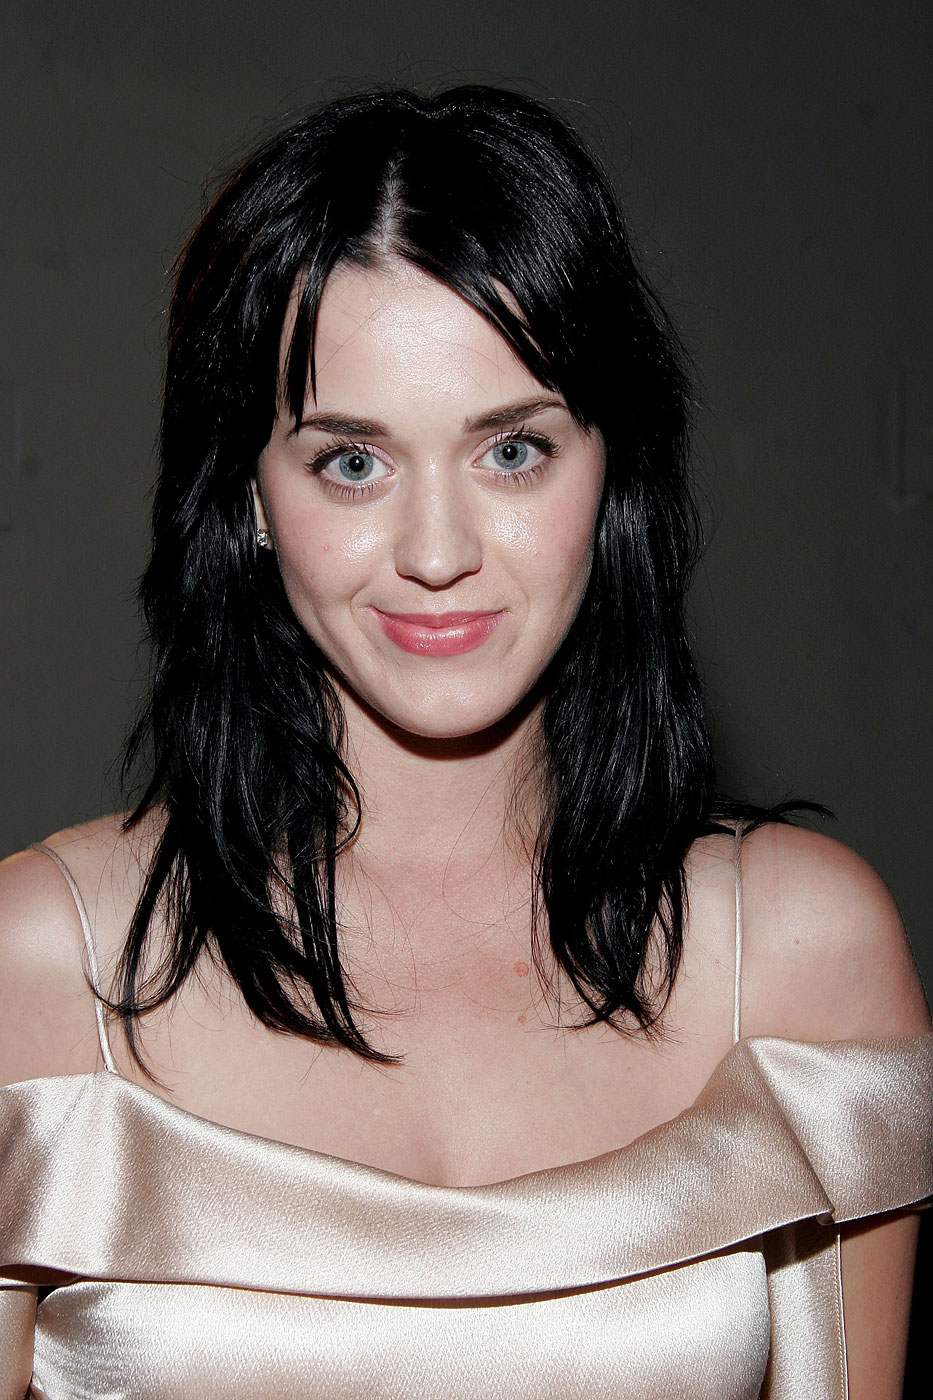 Katy Perry attends the EMI/Capitol Records Grammy party held at Boulevard3 on February 11, 2007 in Hollywood, California.